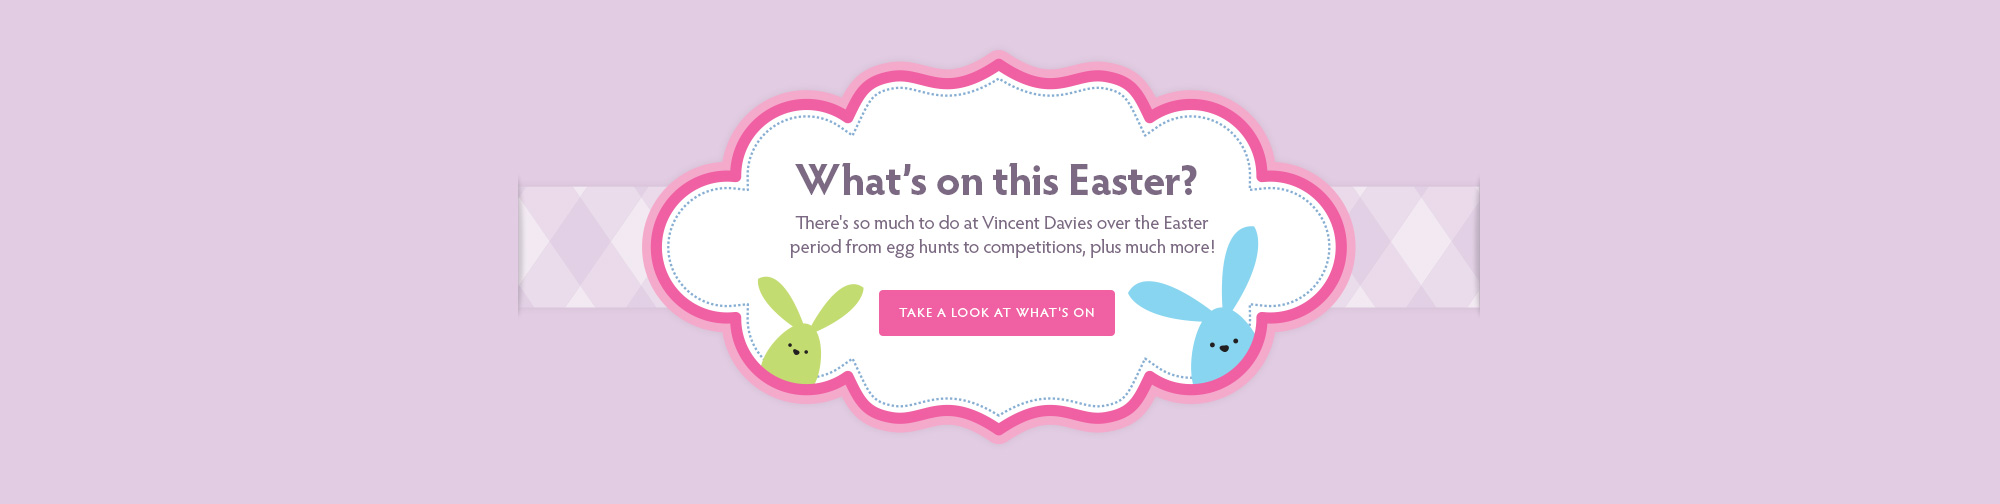 What's on this Easter